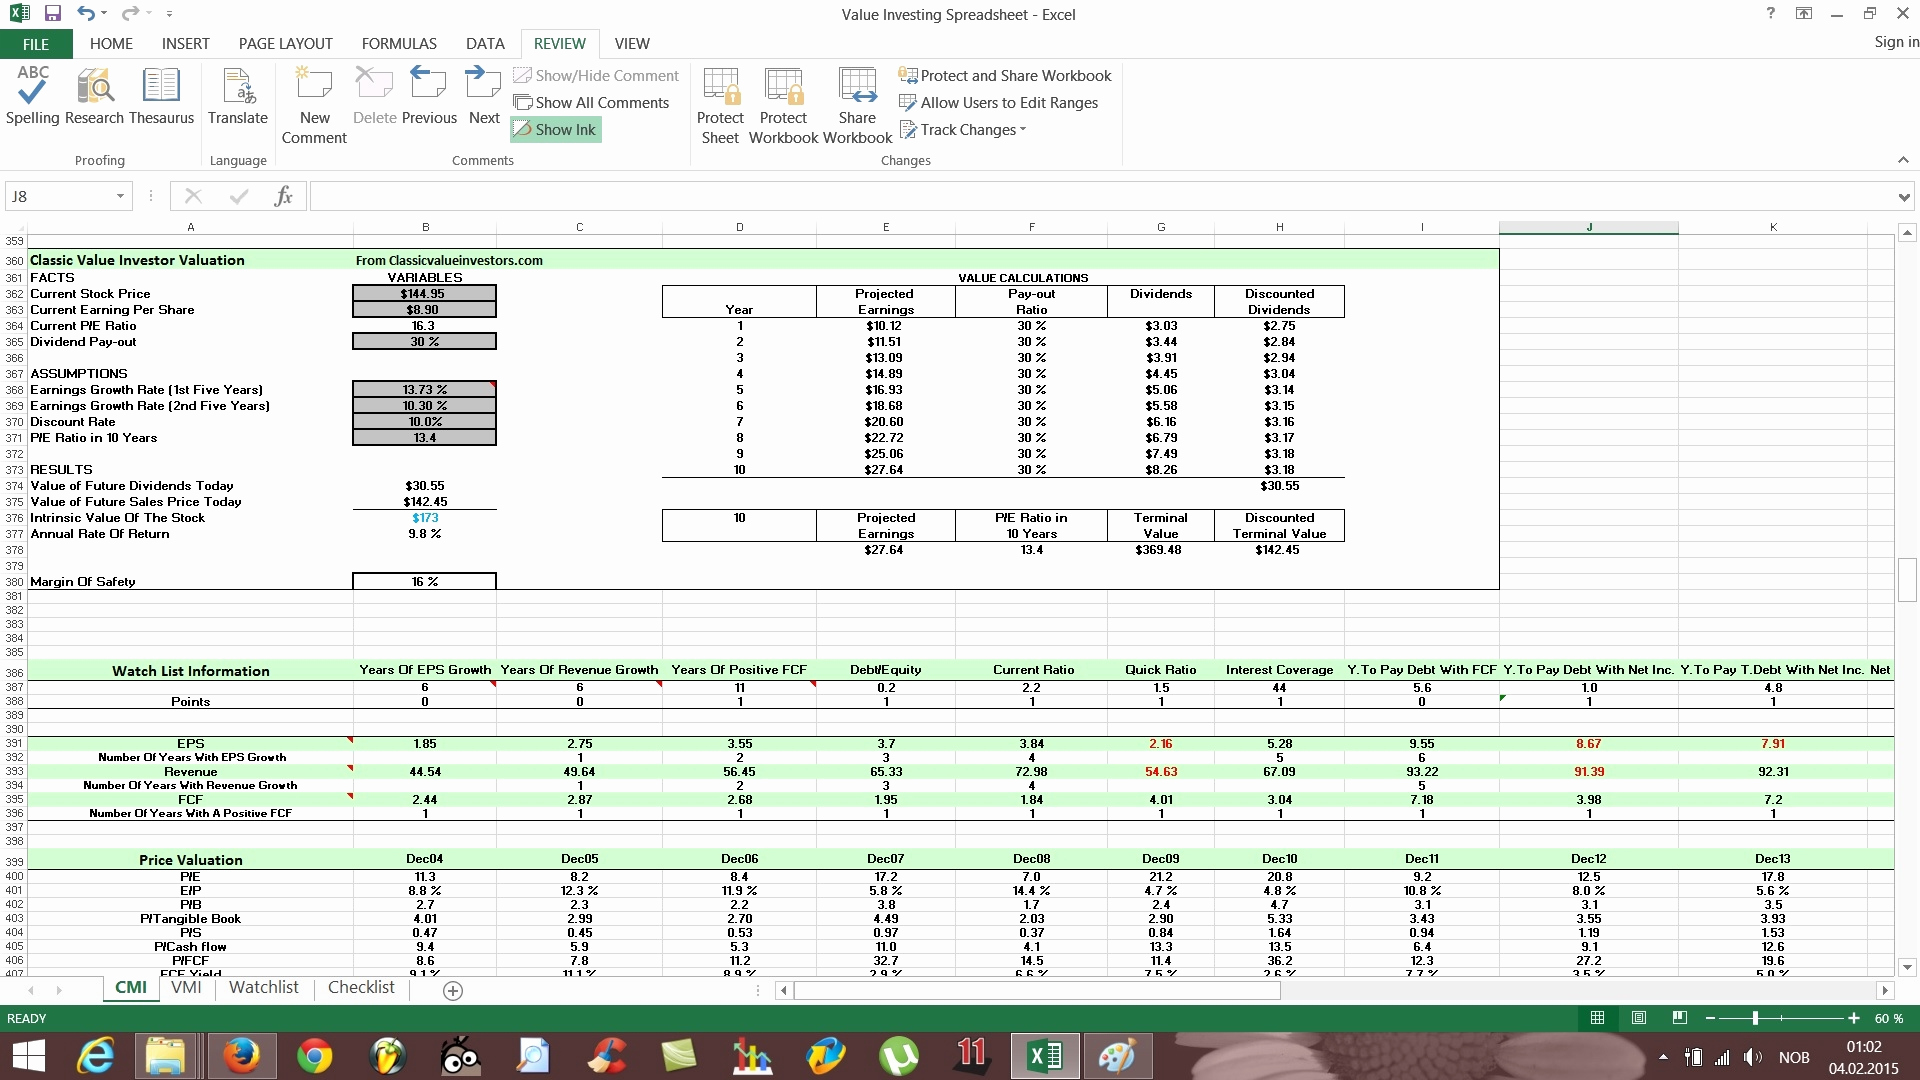 Download Rule 1 Investing Spreadsheet And Rule 1 Investing Spreadsheet Download